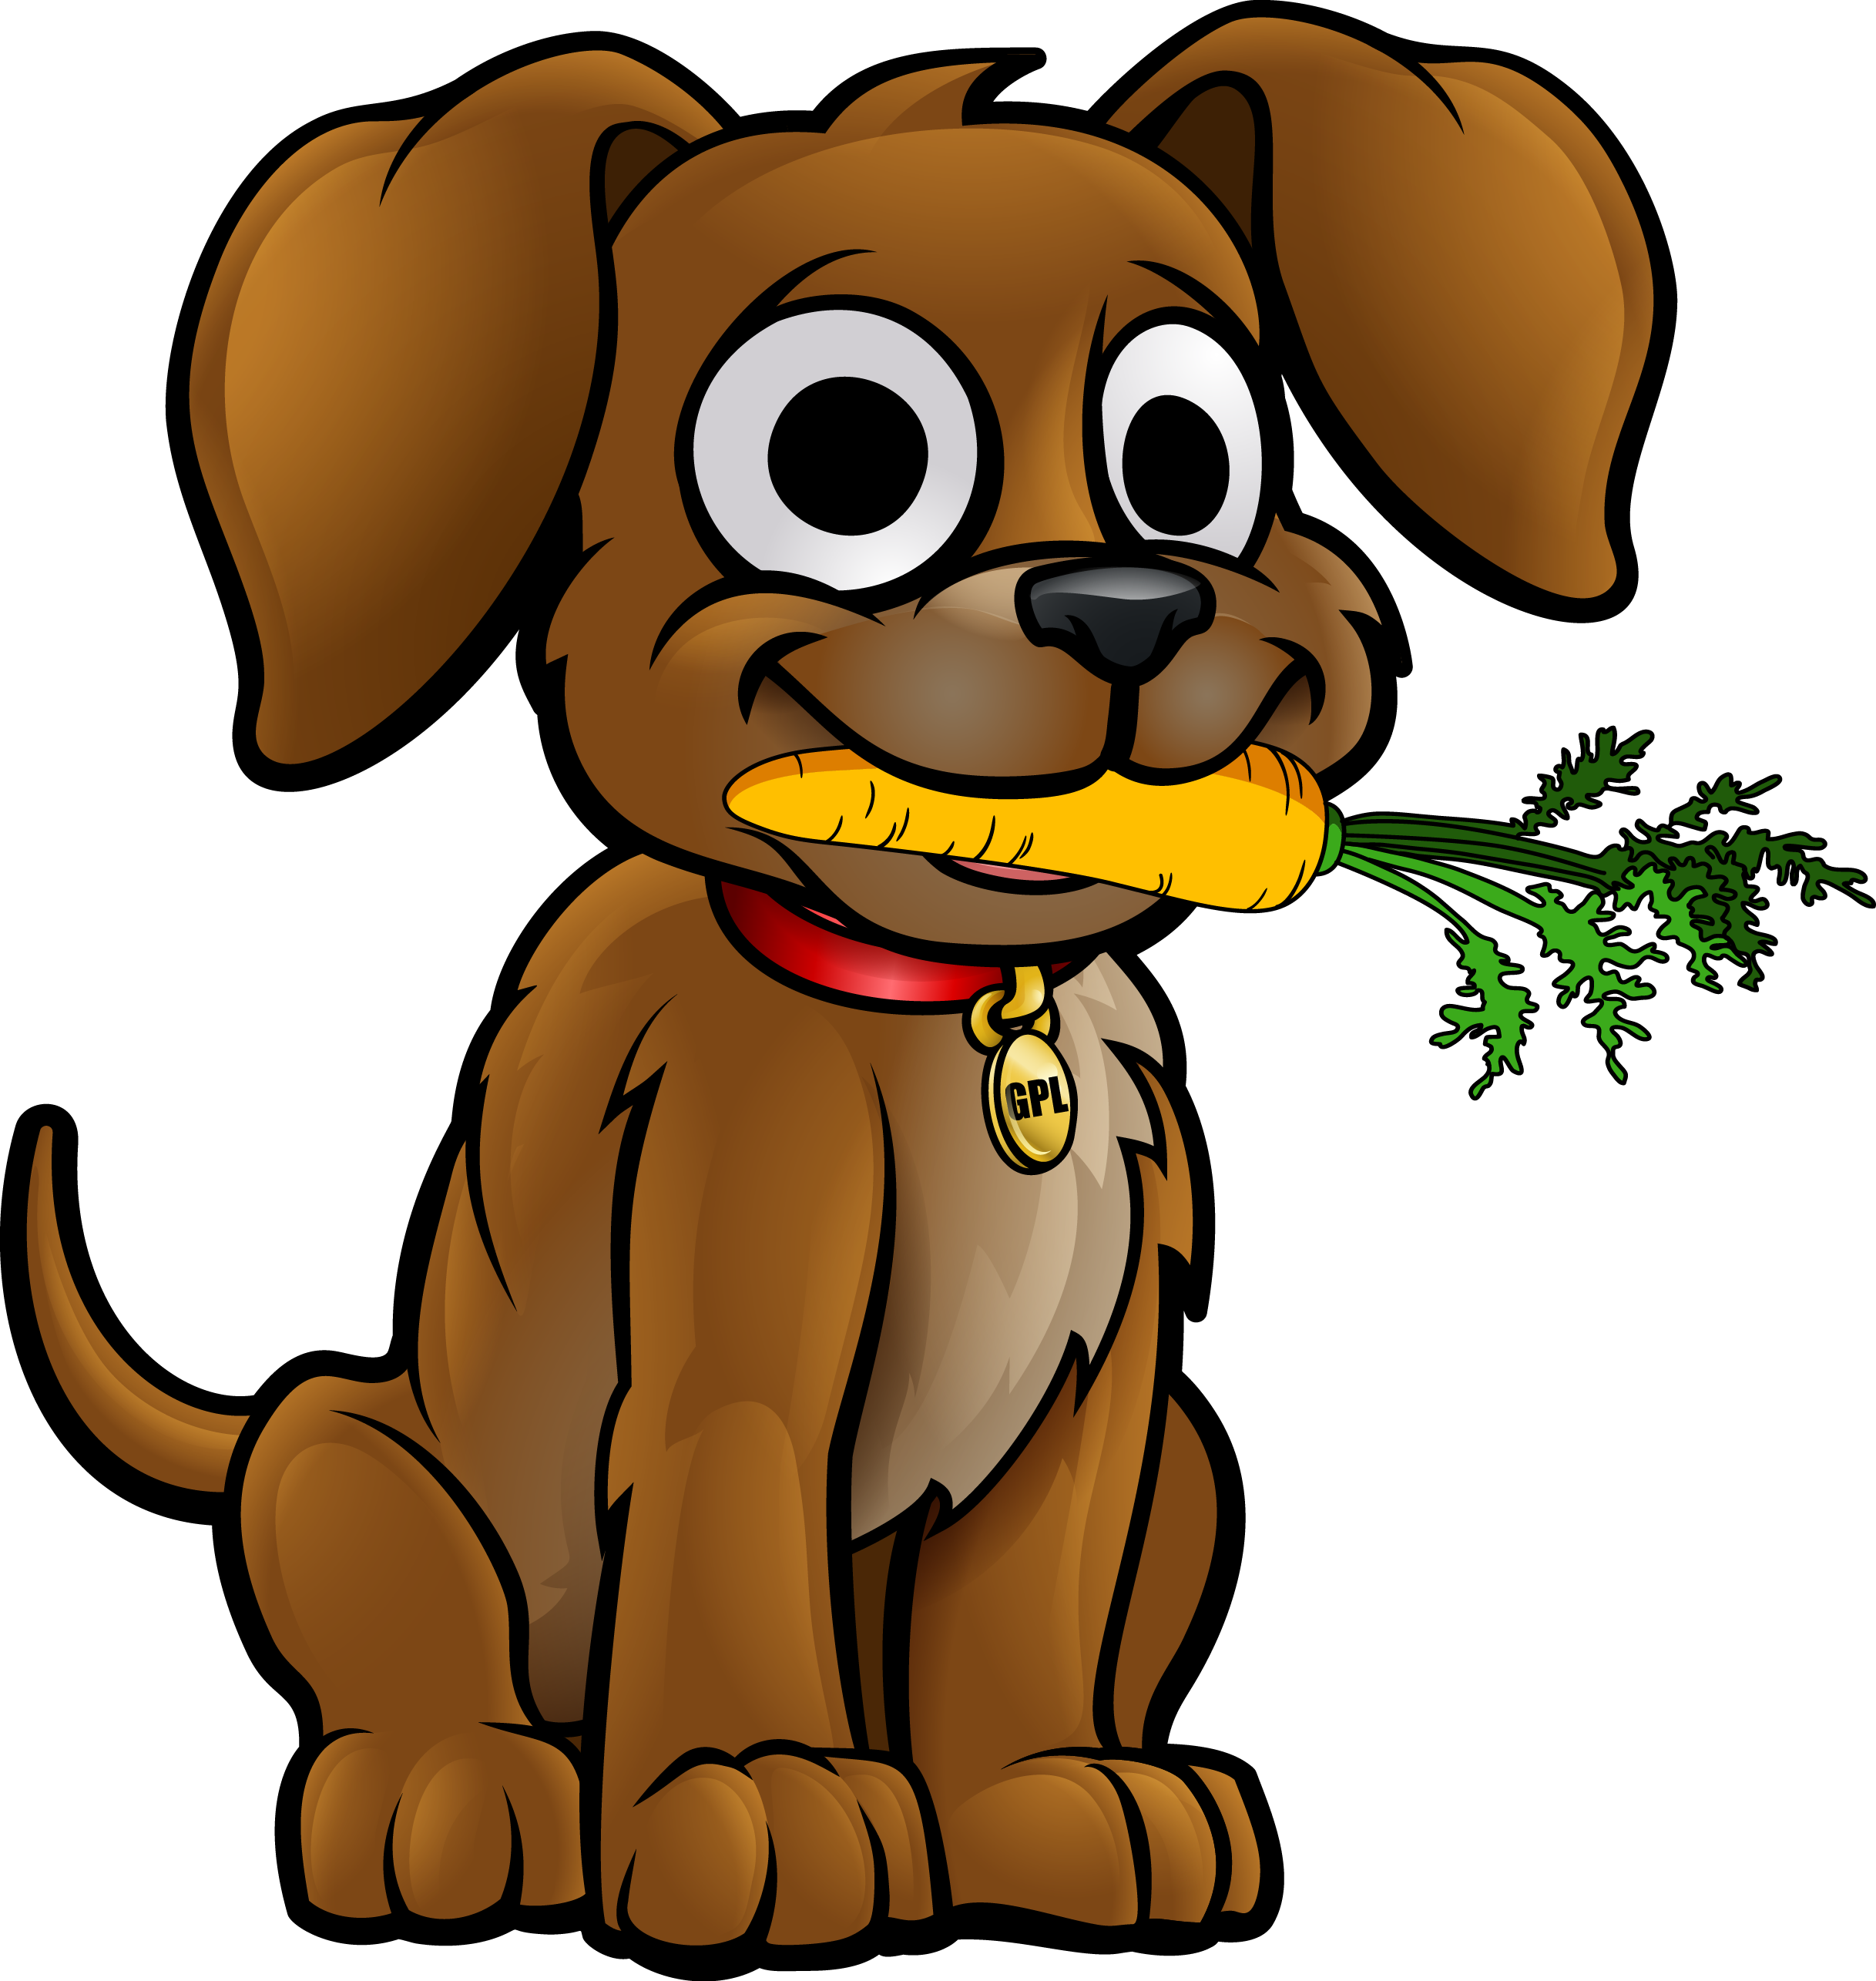 Dog eating treats clipart clip art transparent download Fetch-A-Veg Fundraiser - RVAg clip art transparent download